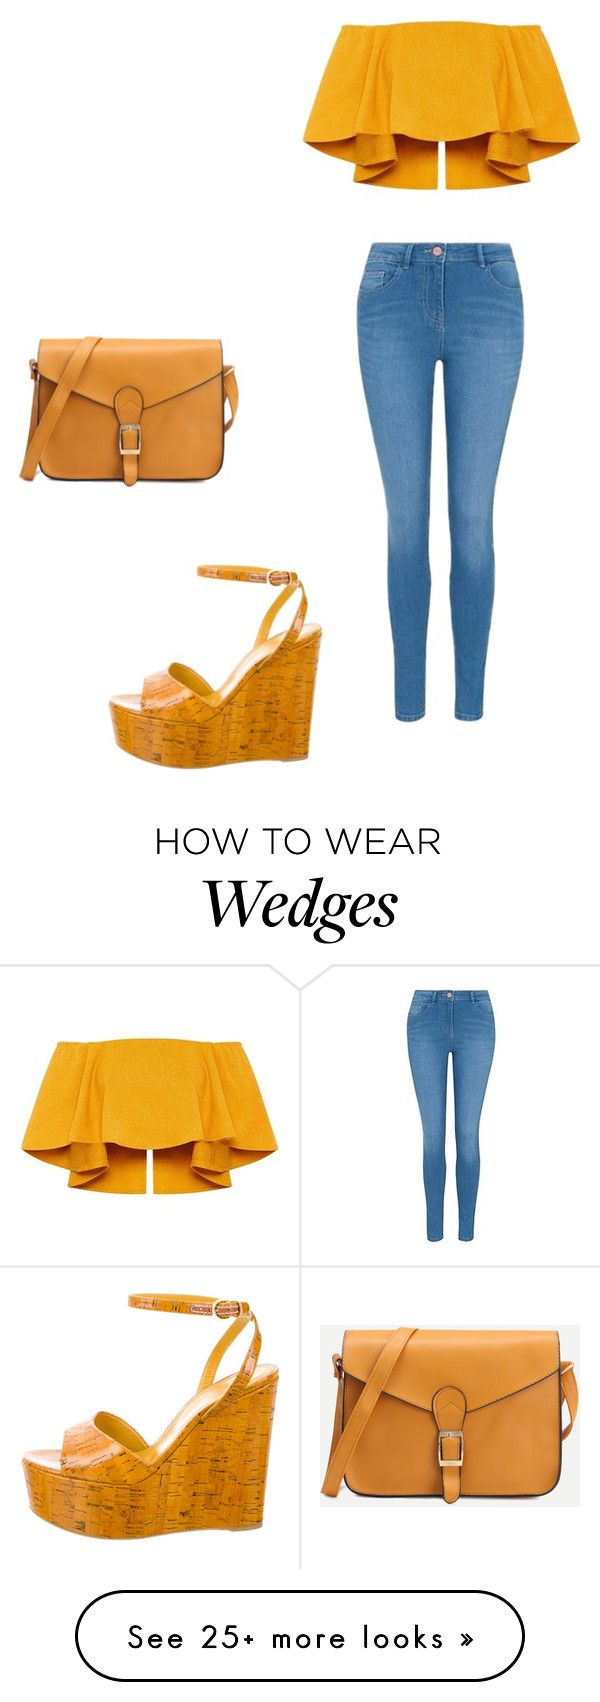 """School outfit"" by hairstylinghippo on Polyvore featuring George and Sergio Rossi"